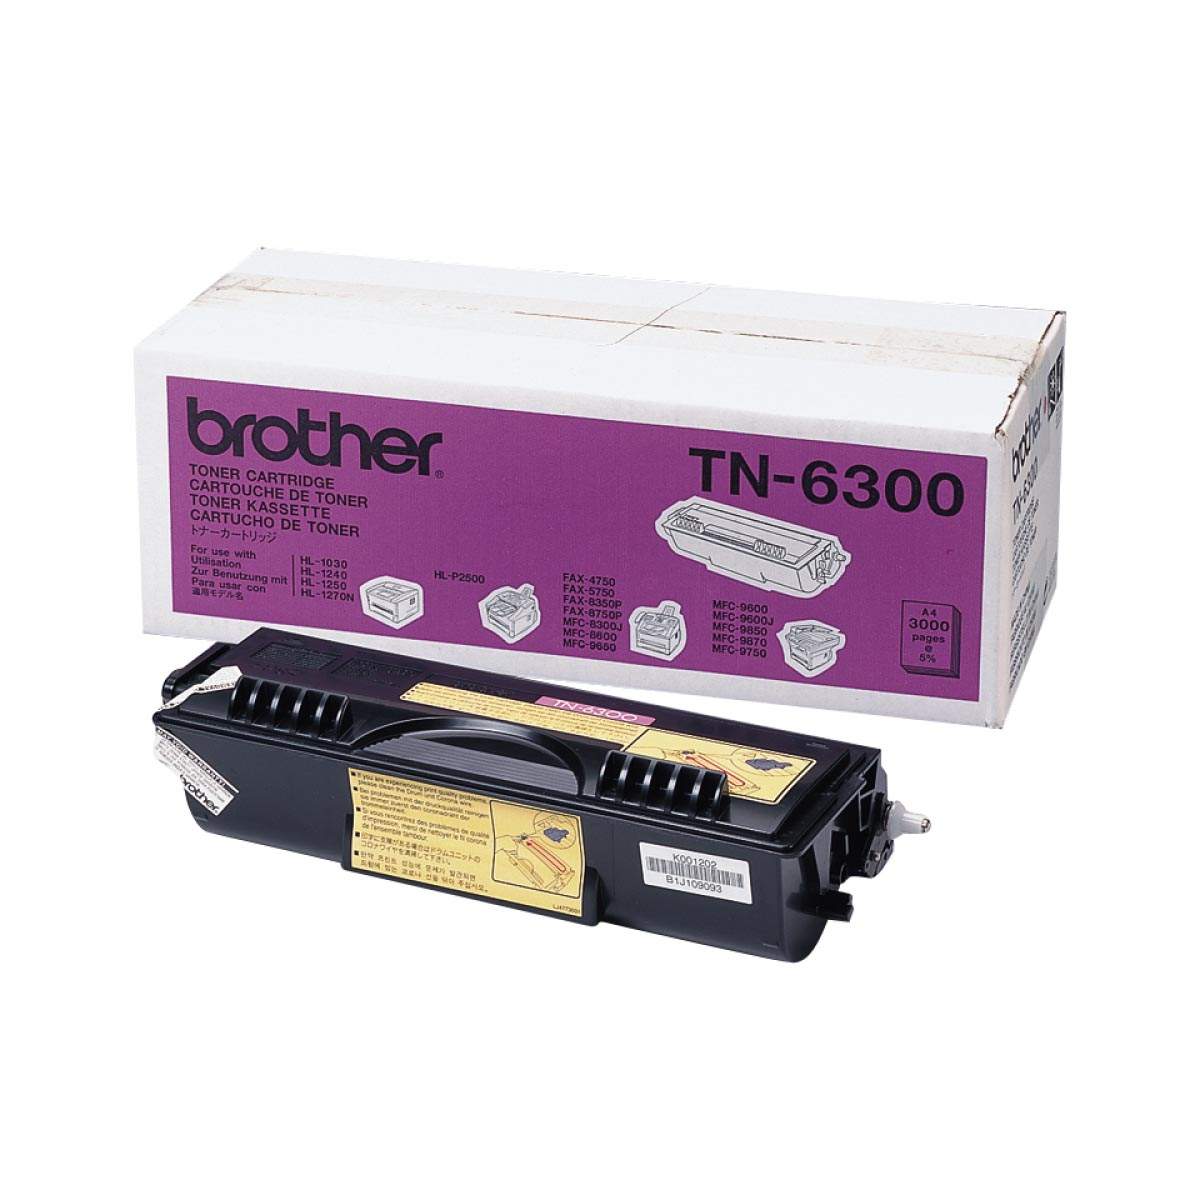 Cartucho de tóner original Brother TN6300 negro